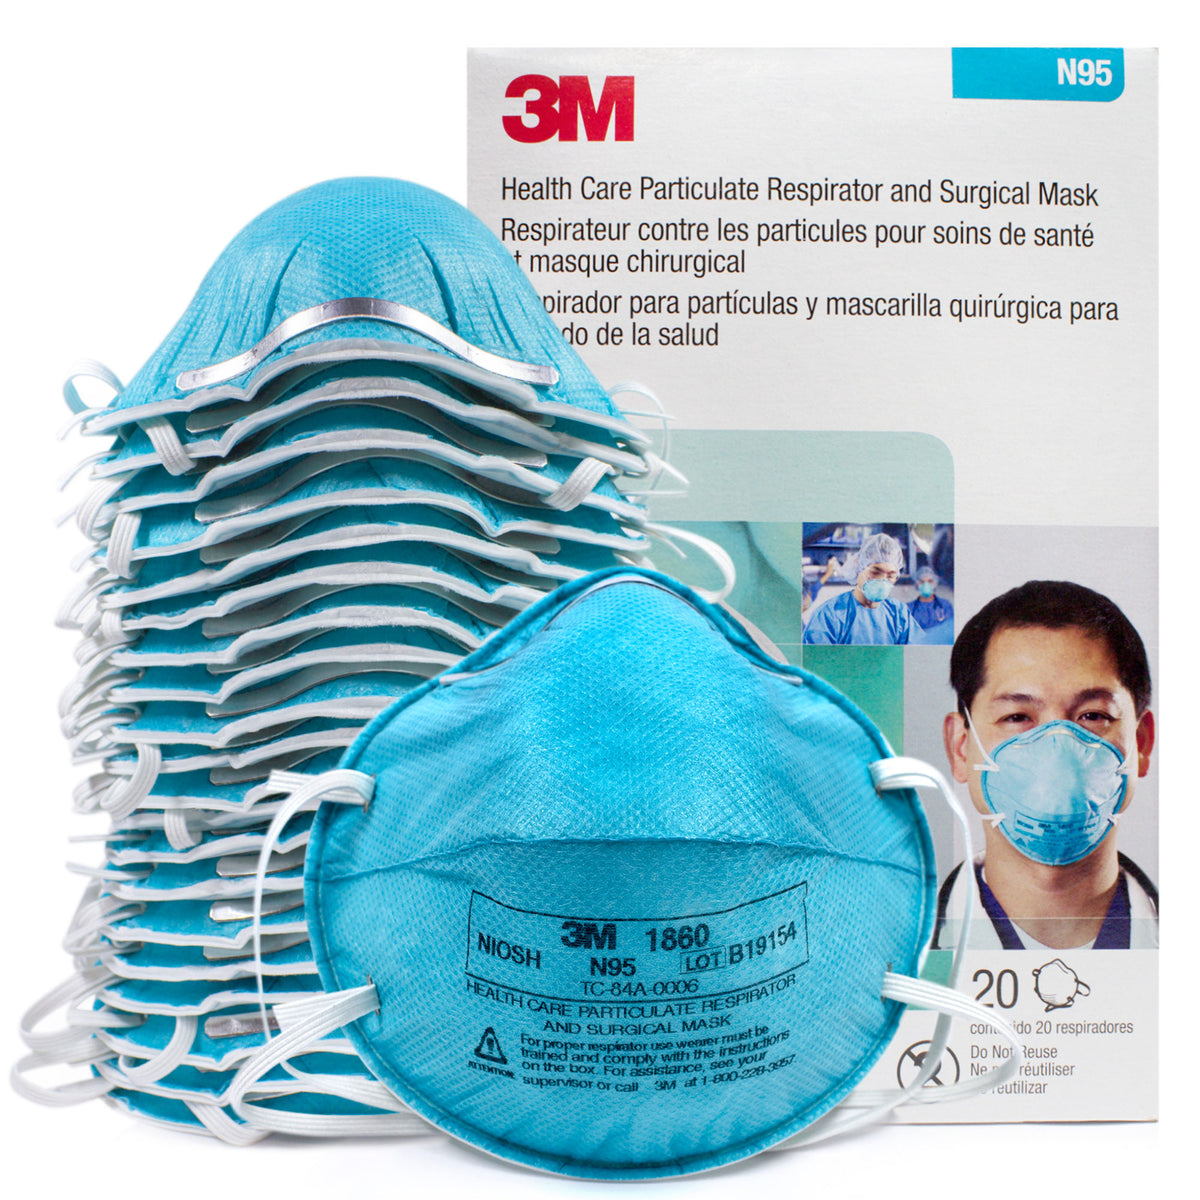 3m n95 mask reusable or not